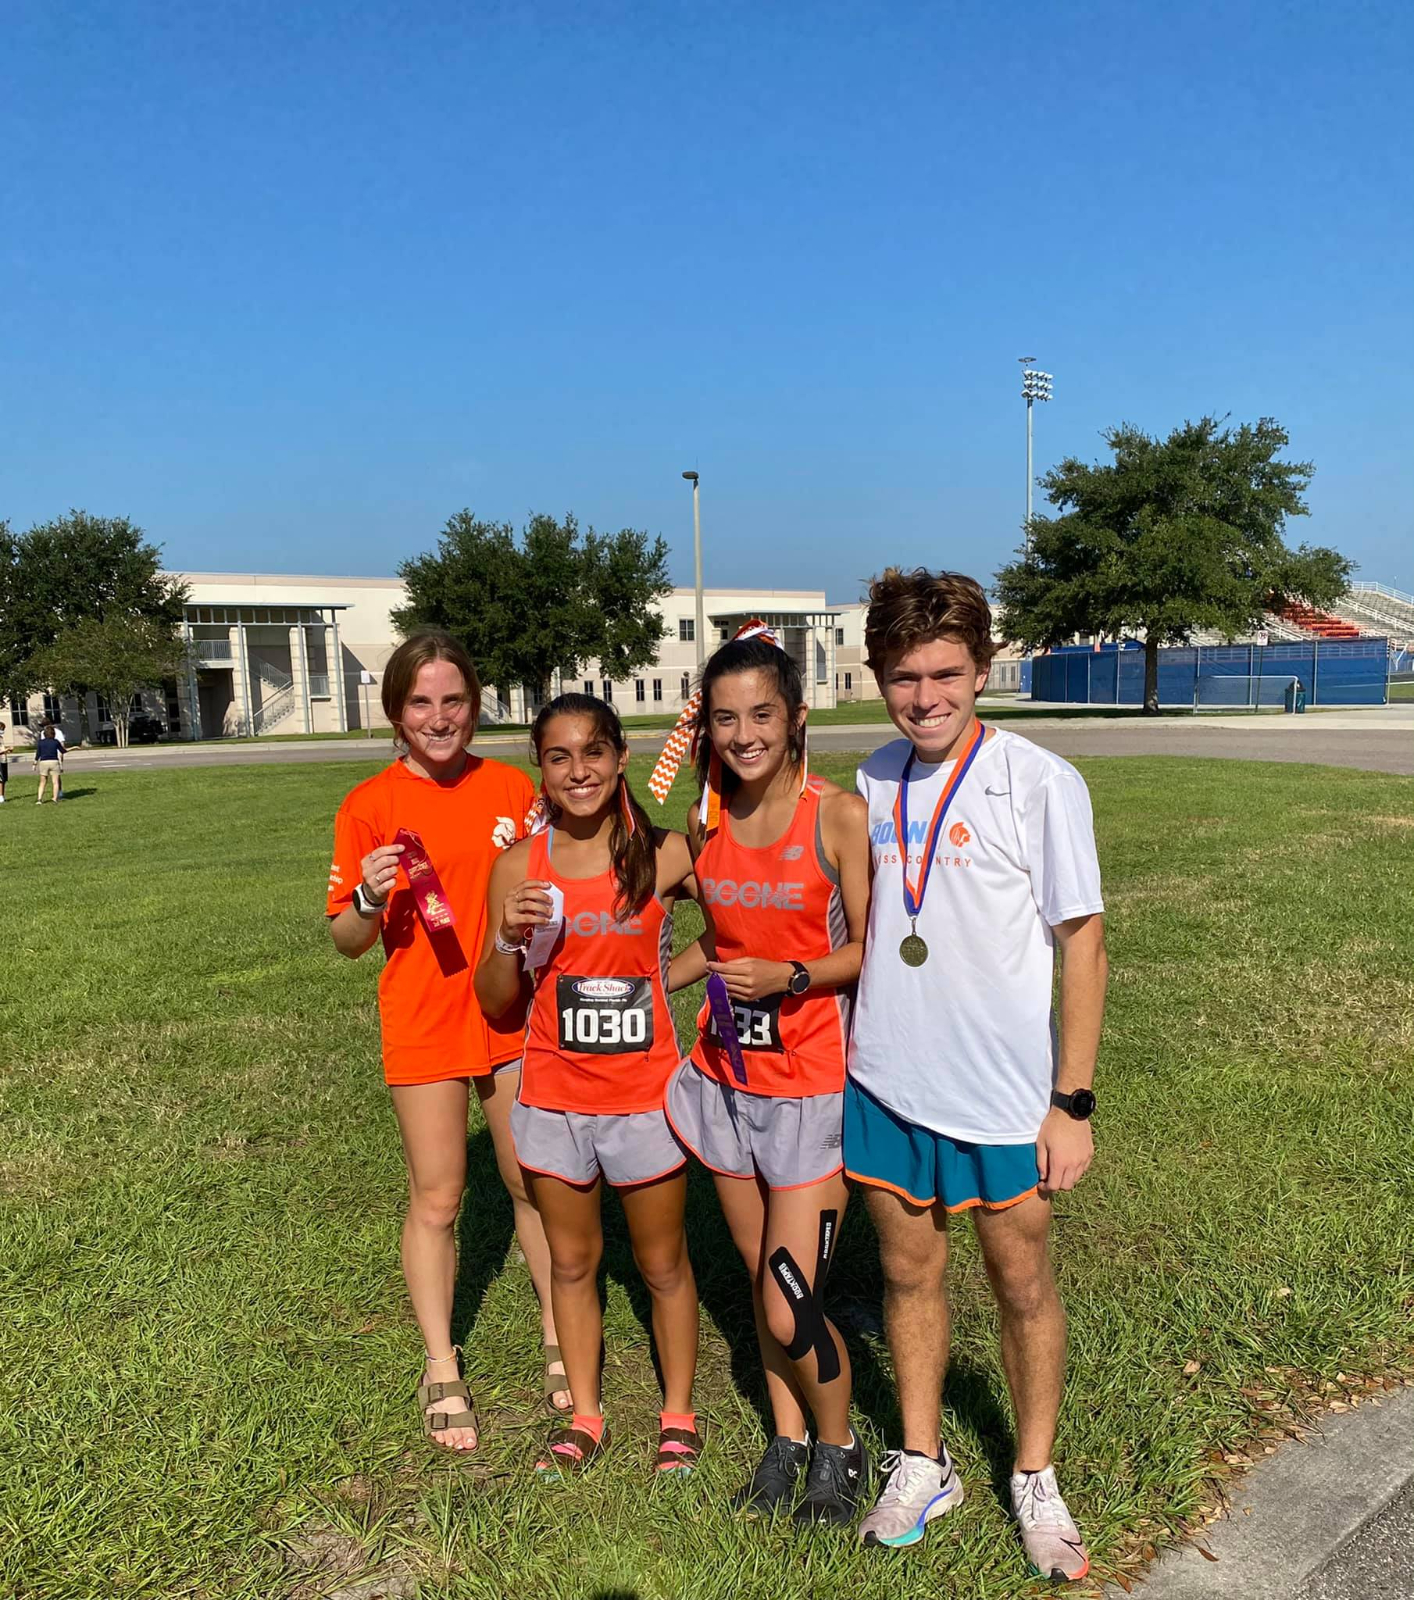 Cross Country Metro Results: Both Teams Take 3rd Overall